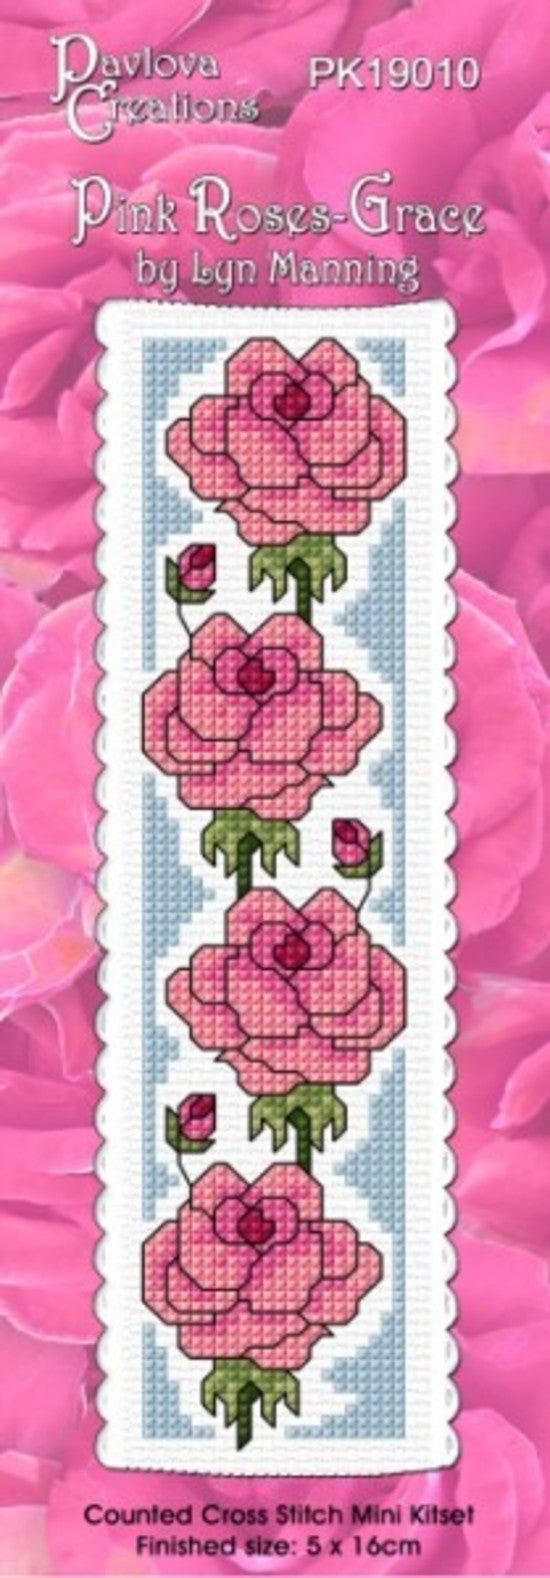 Cross-stitch bookmark - Pink Roses - Grace